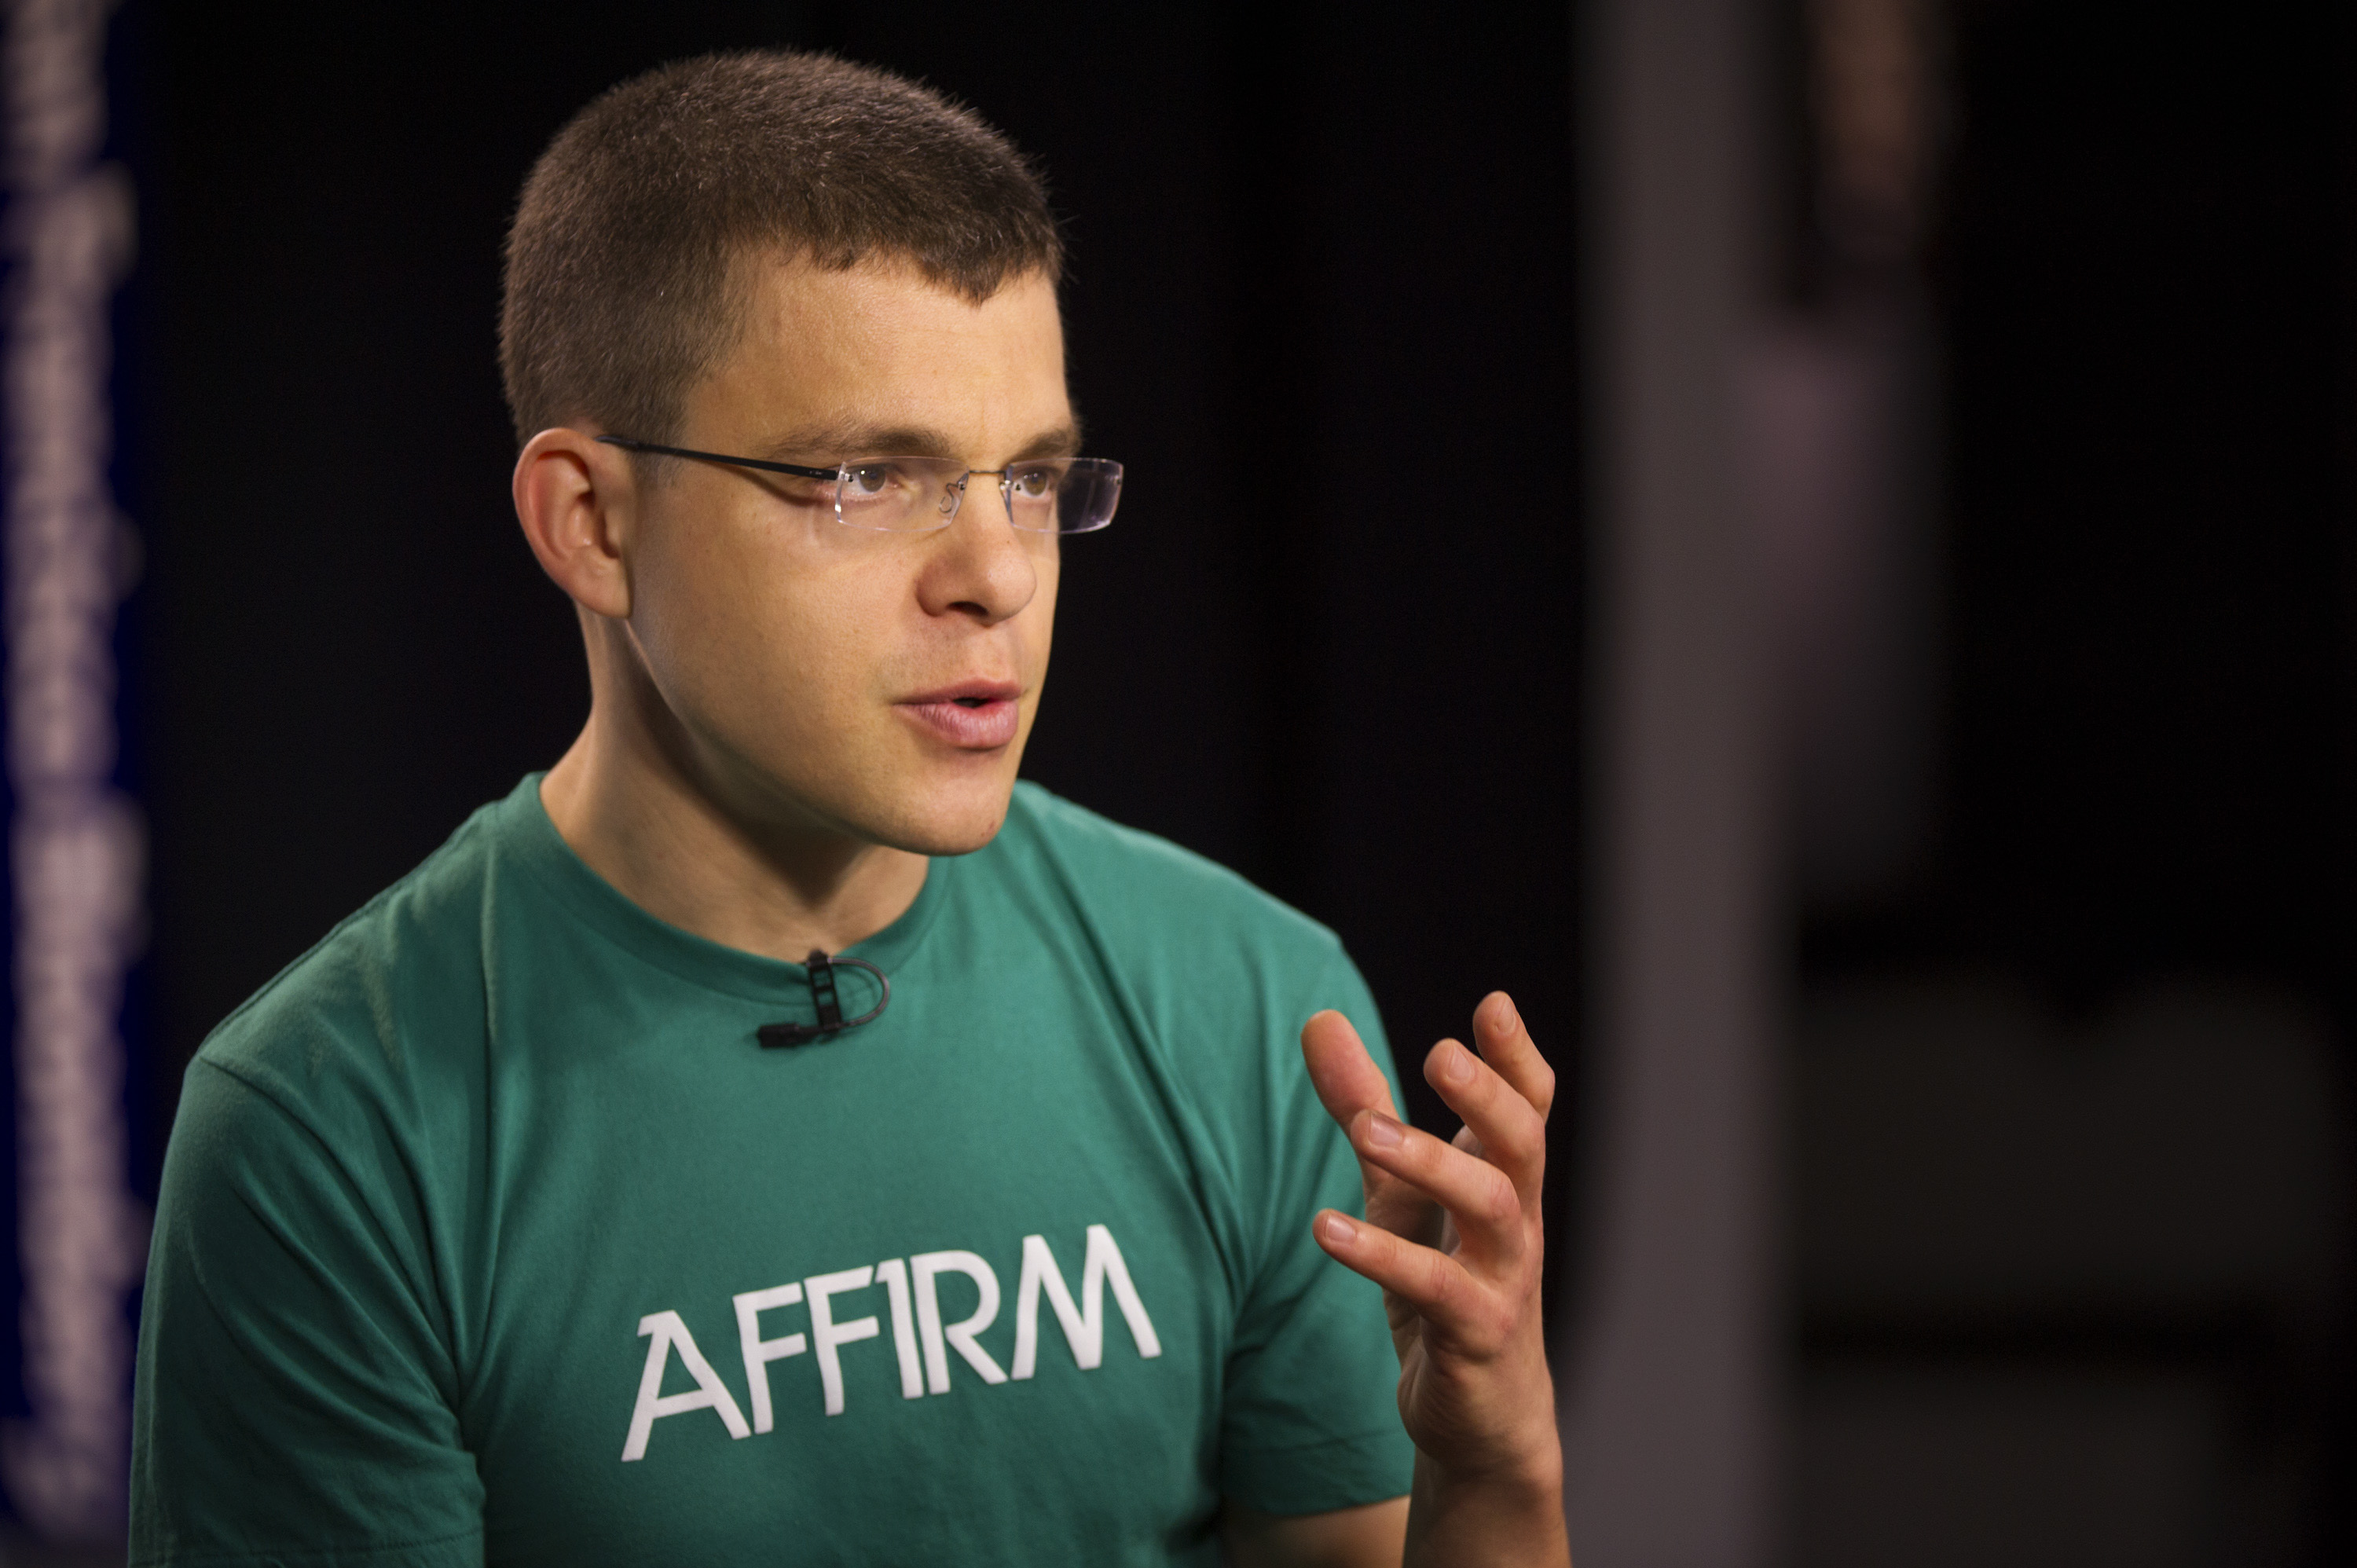 Max Levchin speaks during a Bloomberg West television interview in San Francisco on Thursday, March 28, 2013.